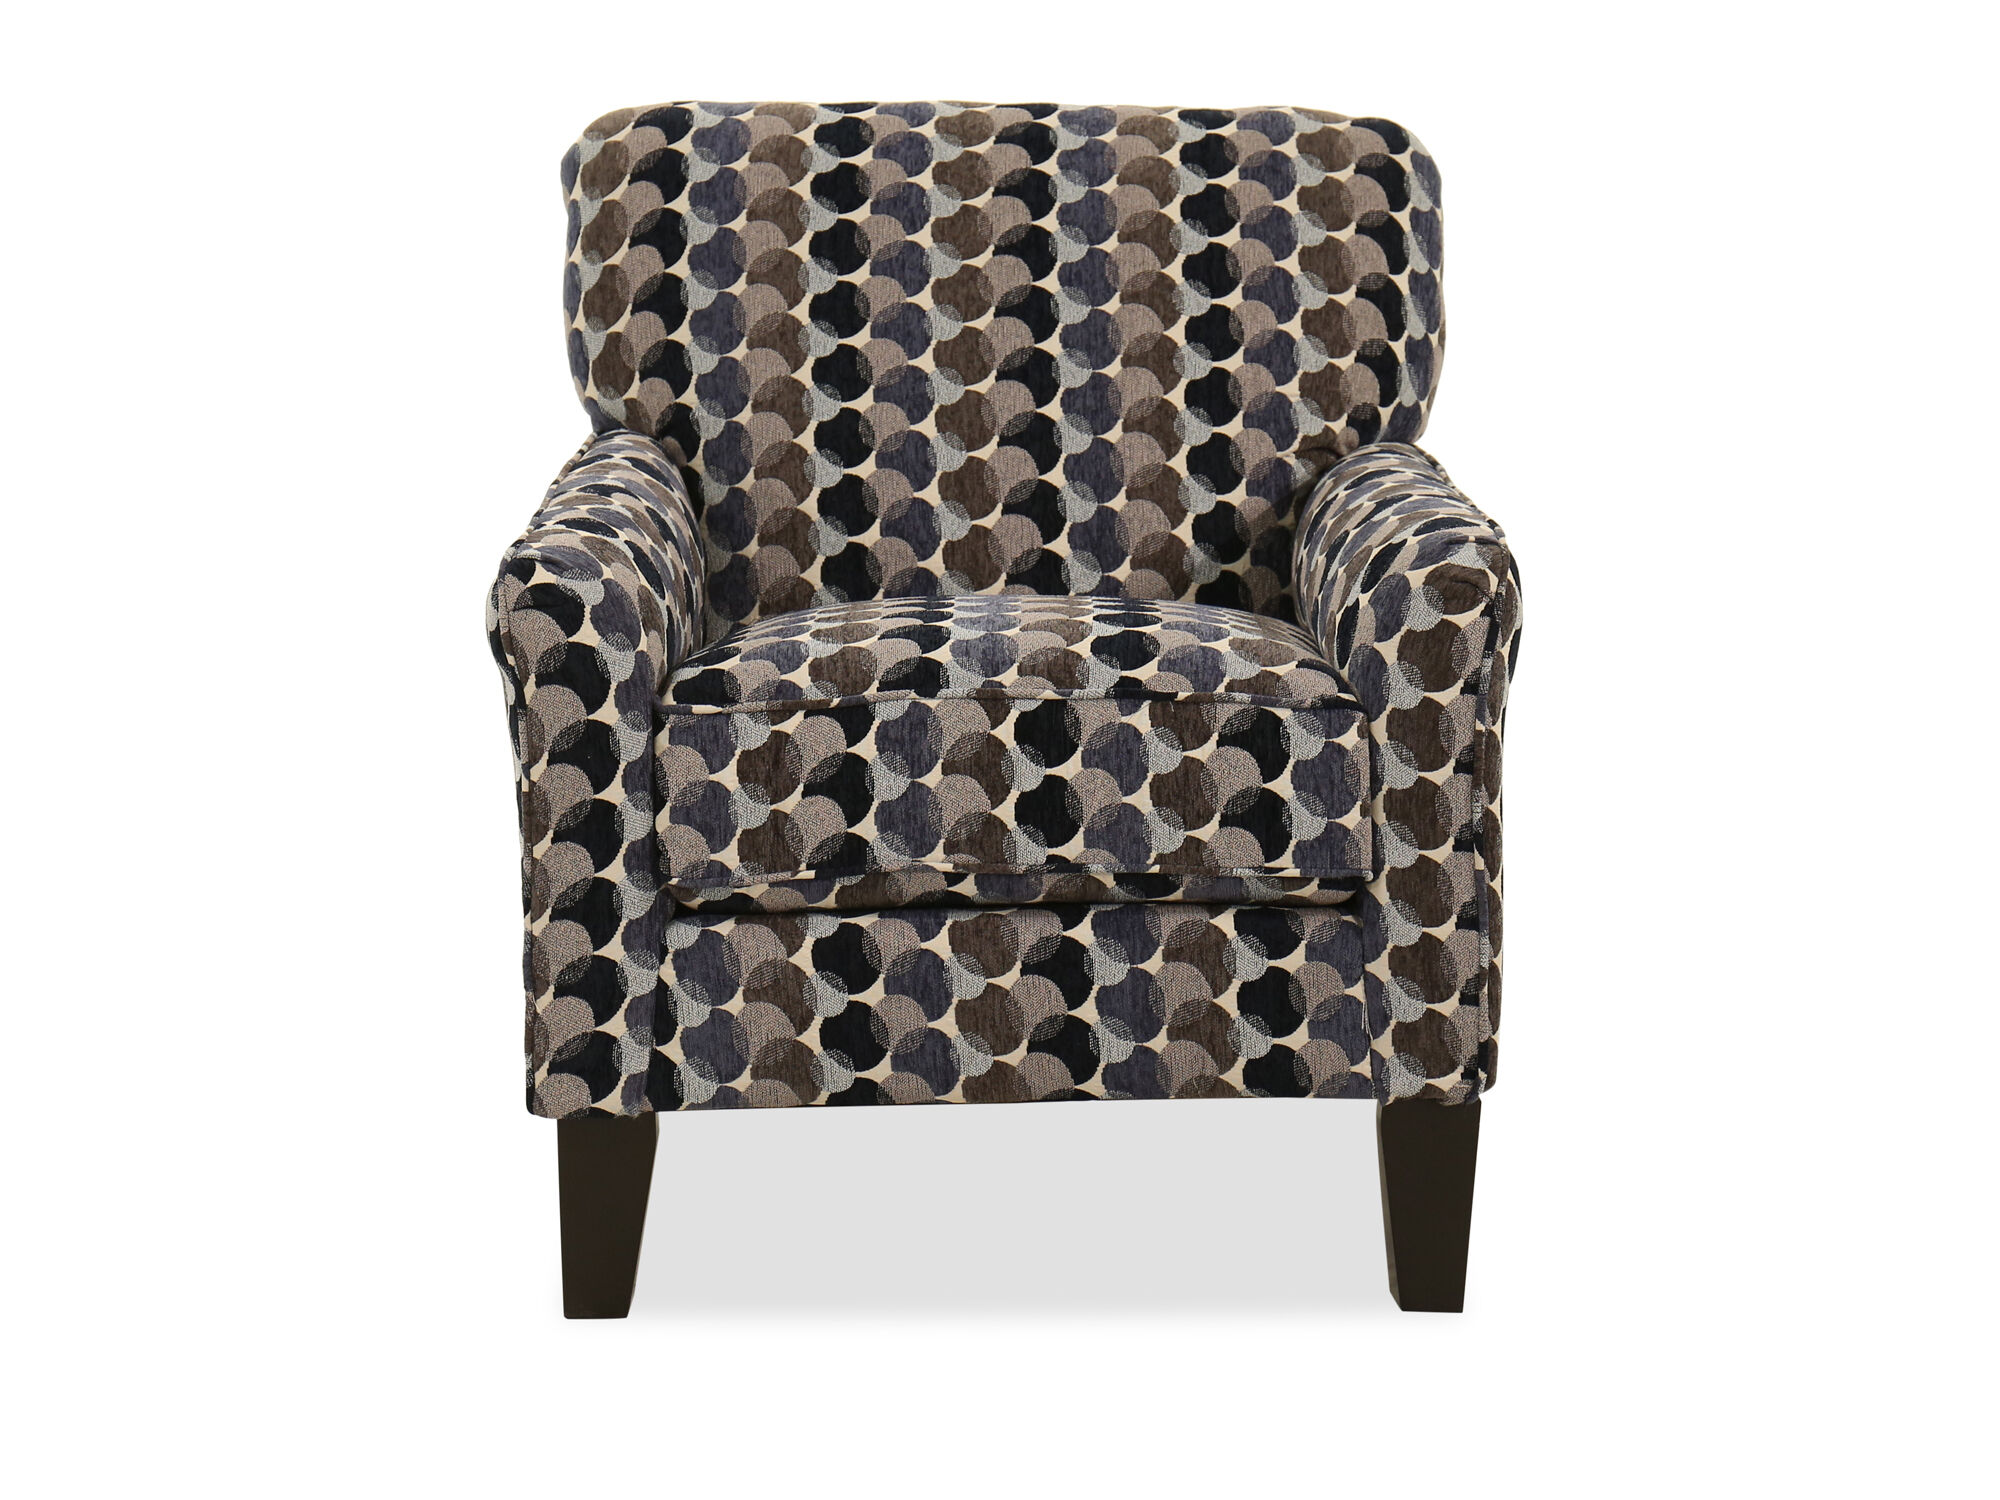 Images 30u0026quot; Bubble Patterned Transitional Accent Chair In Multi  30u0026quot; Bubble Patterned Transitional Accent Chair In Multi